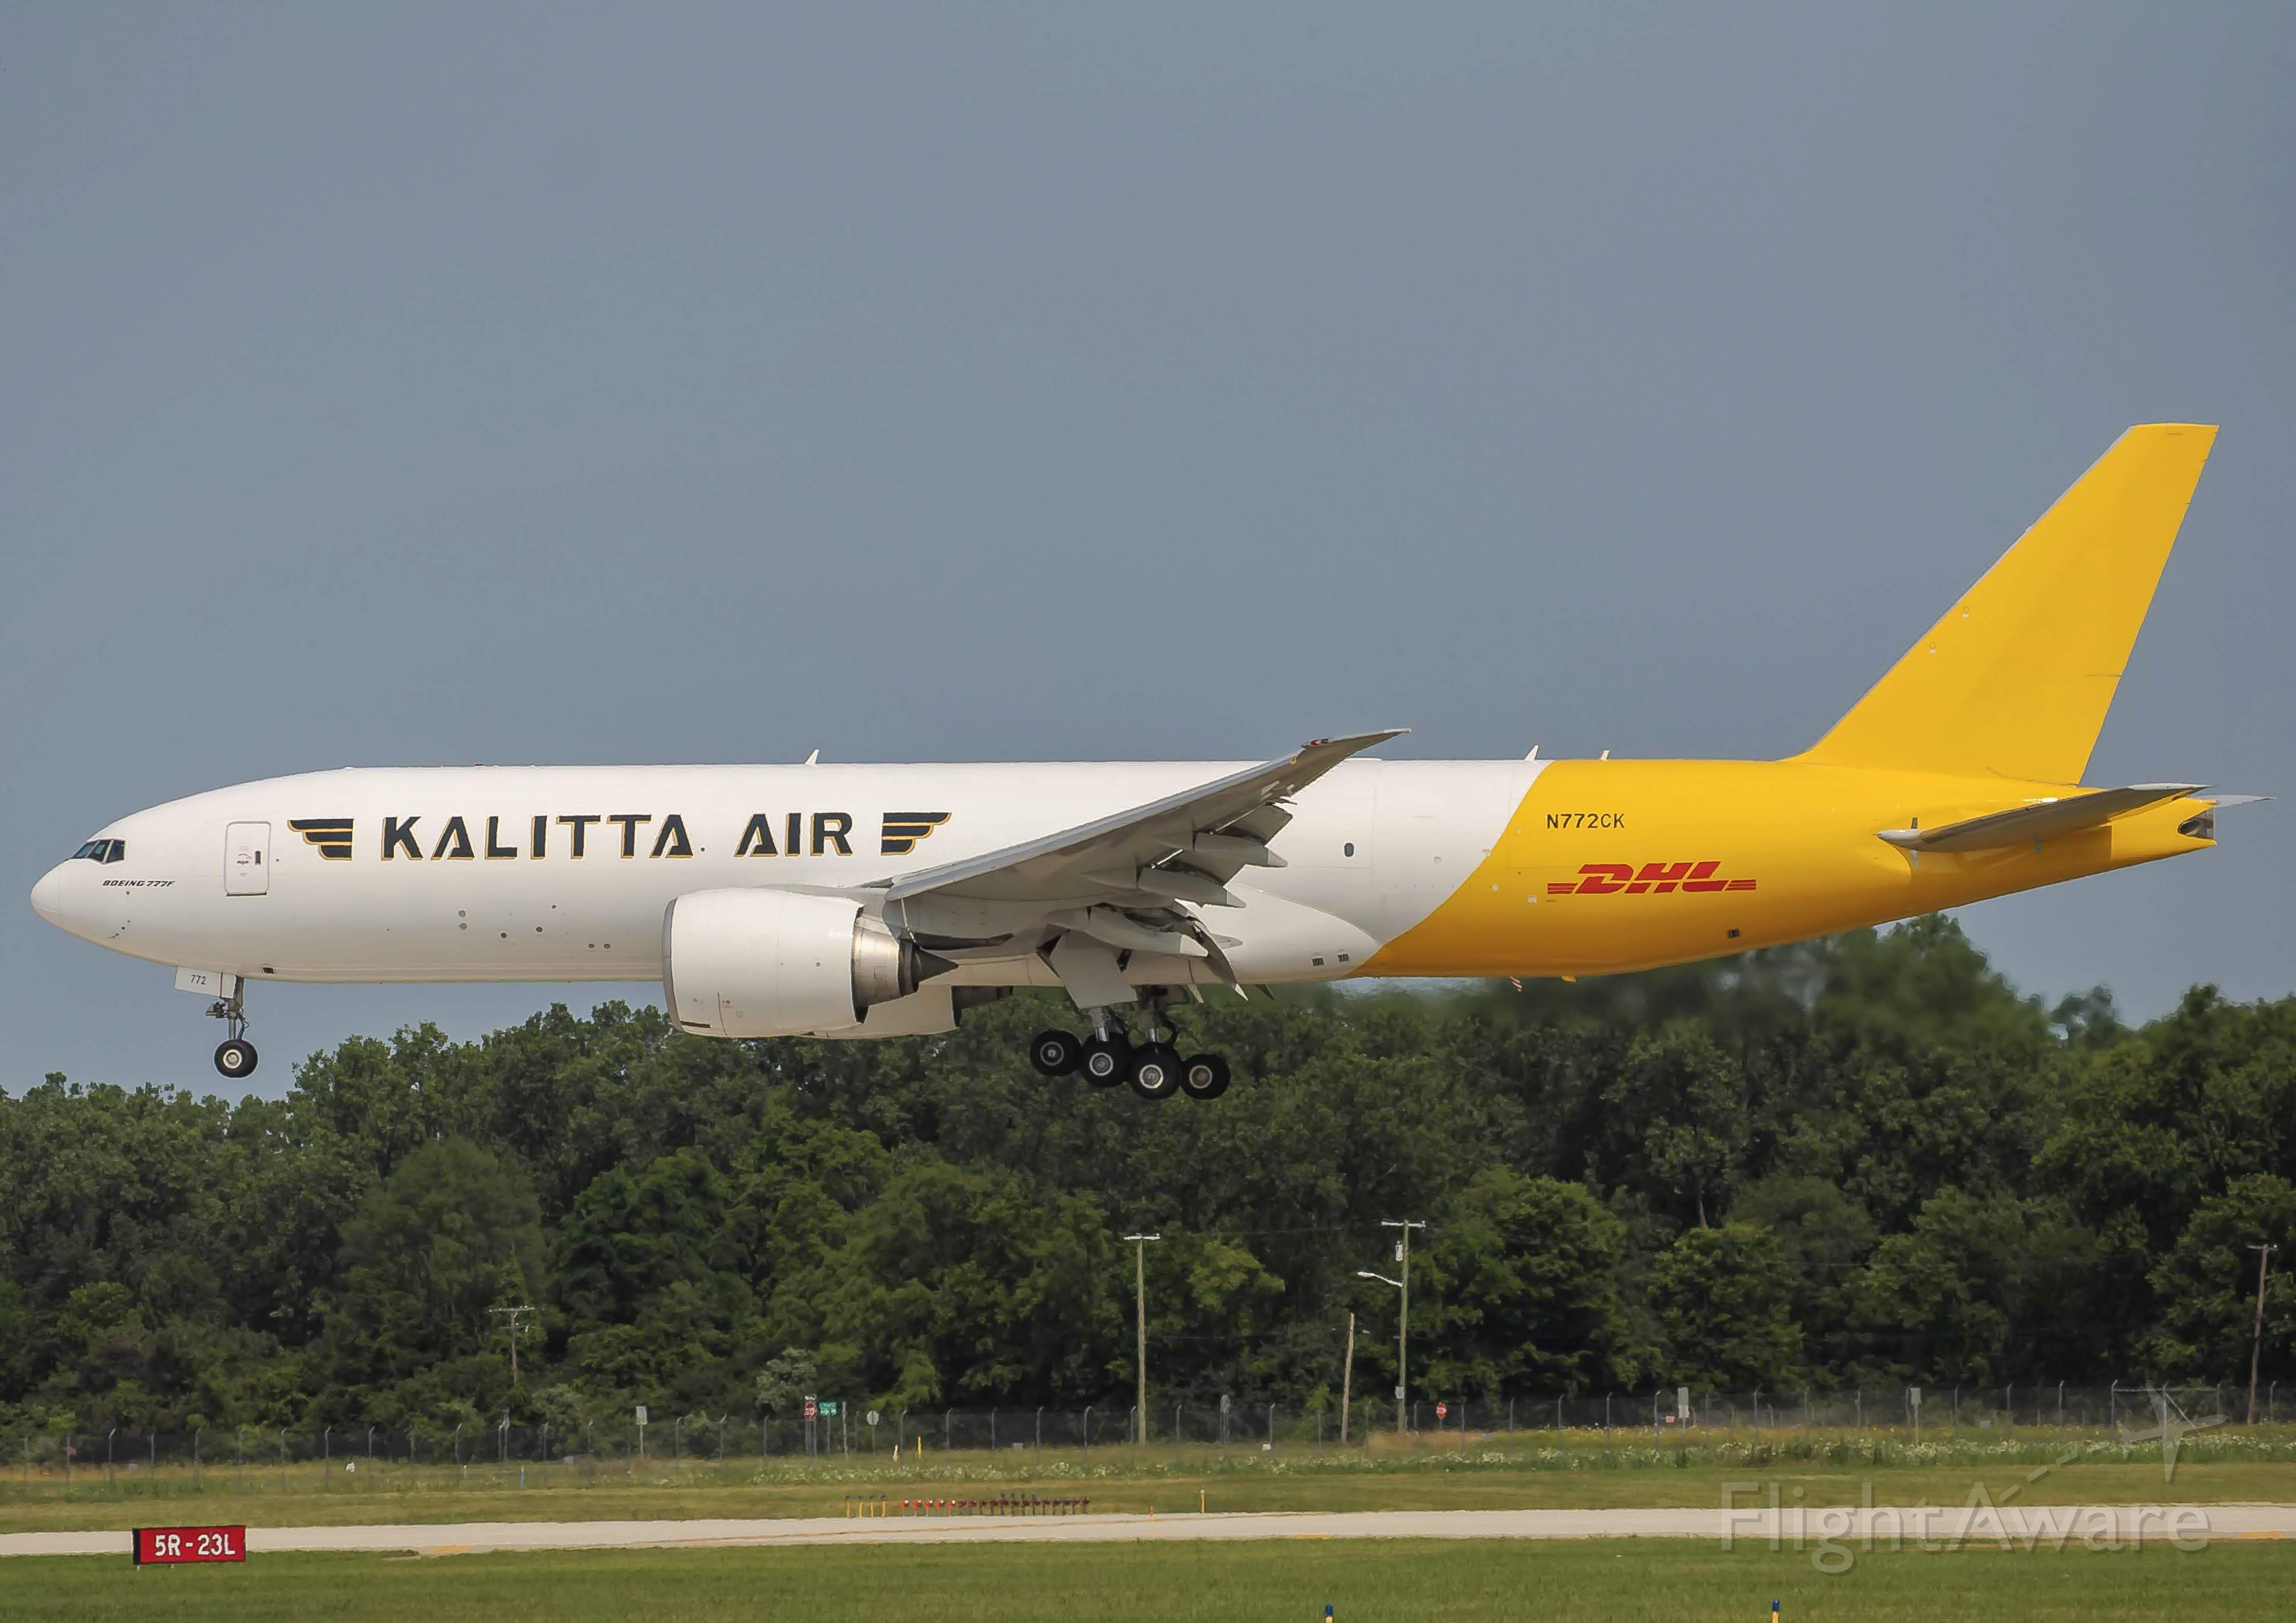 Boeing 777-200 (N772CK) - Kalitta 9777 landing 23L at Willow Run with its brand new(used) 777F. Running Proving runs between Oscoda and Ypsilanti for the past two days. <br /><br />7/25/2019